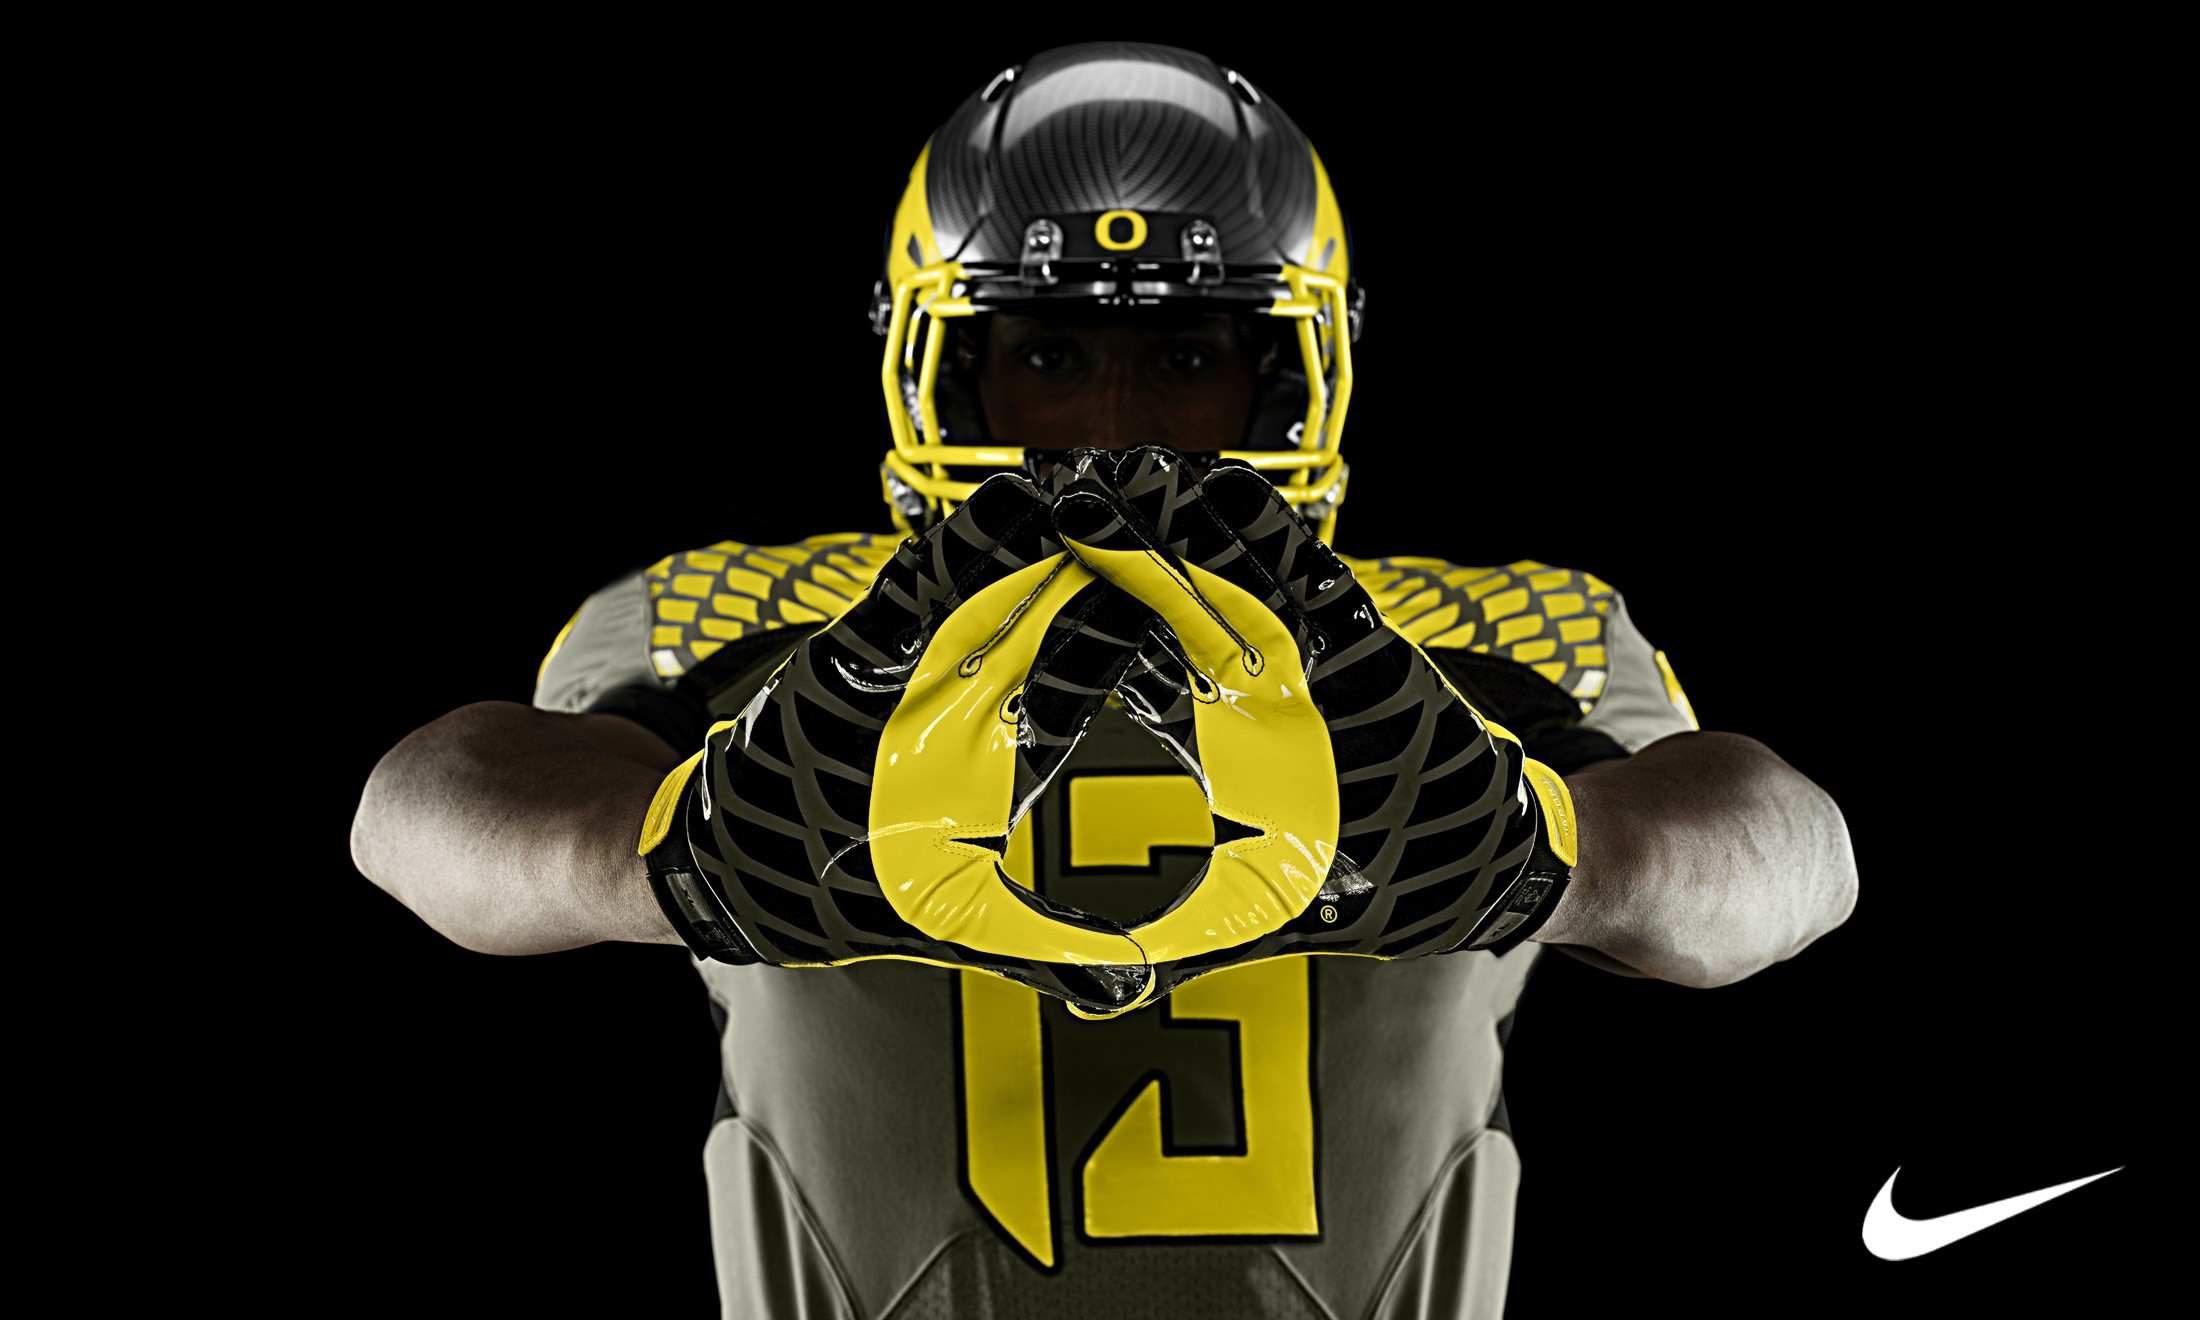 Oregon Ducks Wallpaper 1 Download Free Cool Full HD Wallpapers For